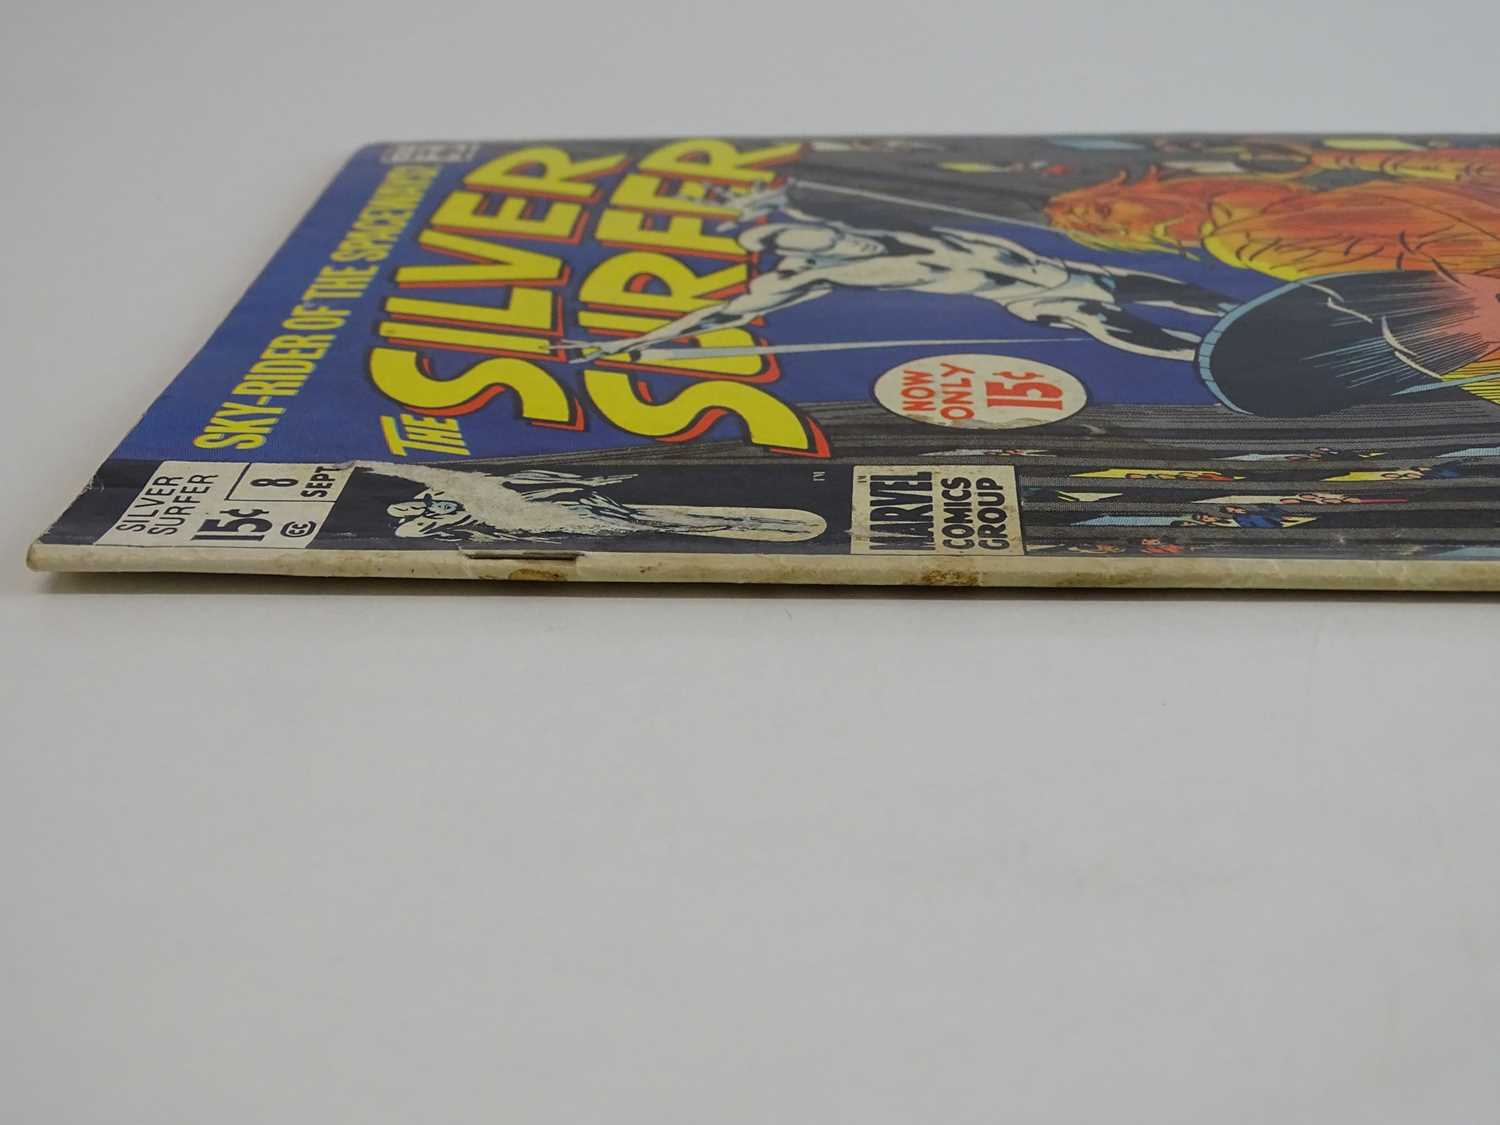 SILVER SURFER #8 - (1969 - MARVEL - UK Cover Price) First appearance of the Flying Dutchman + - Image 8 of 9